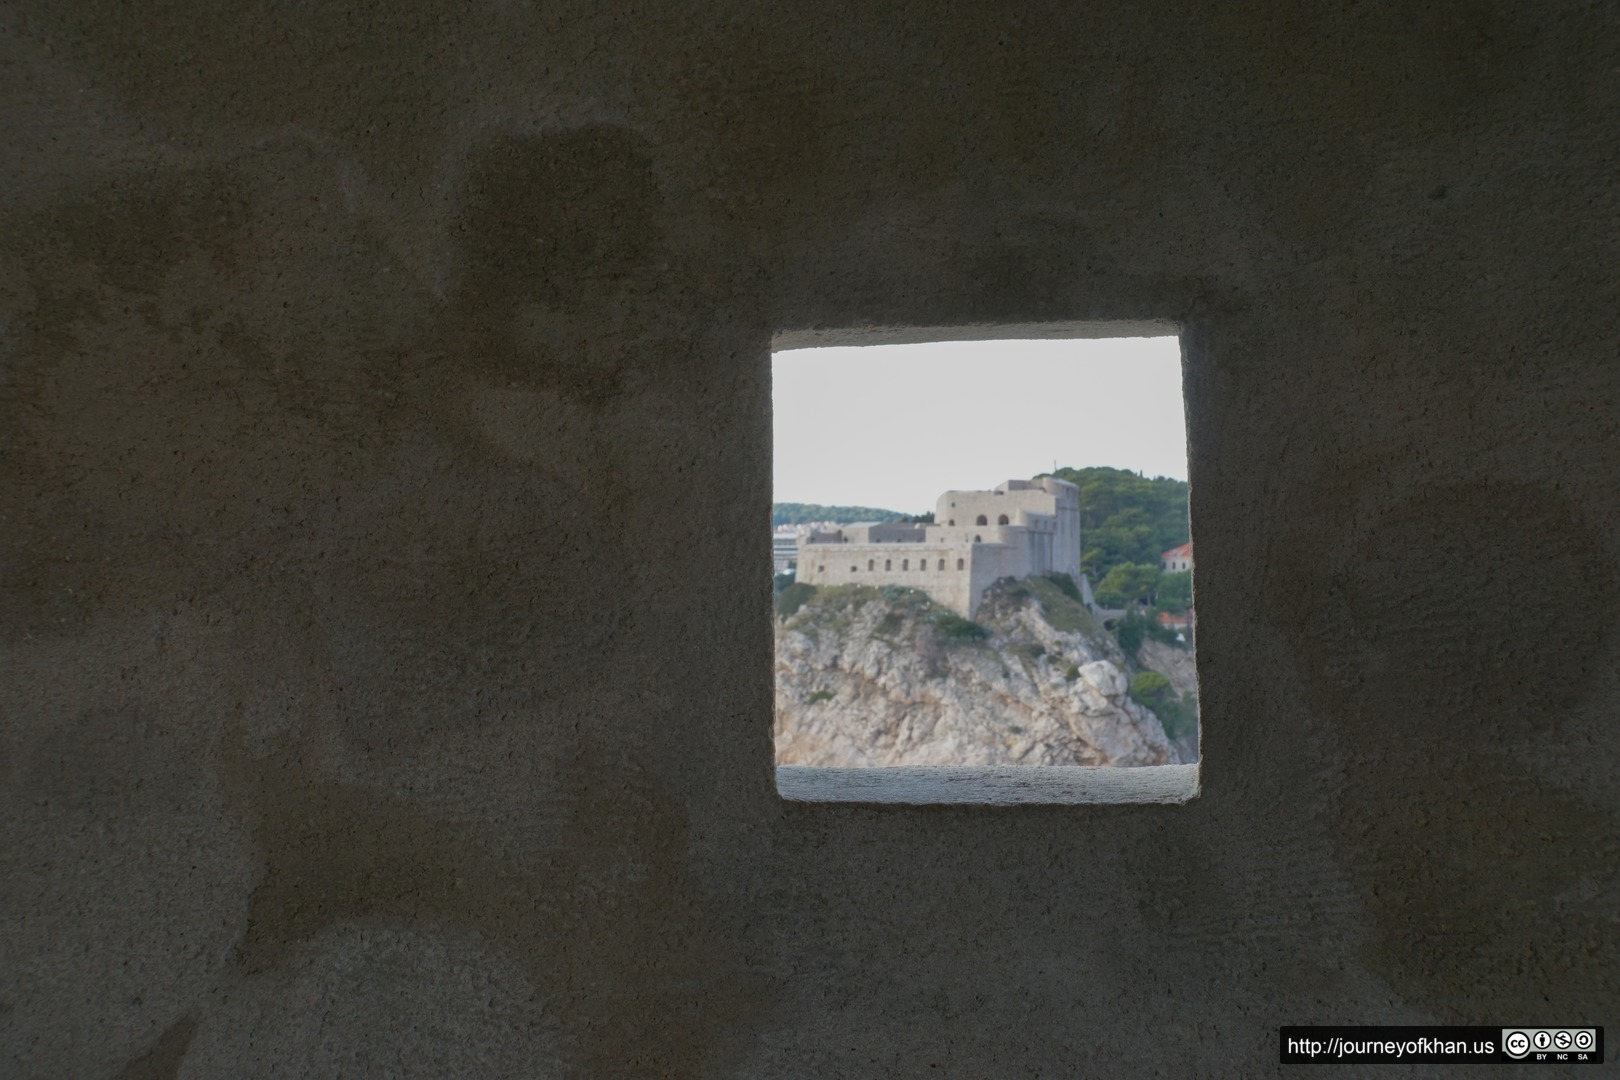 Fort in a Window